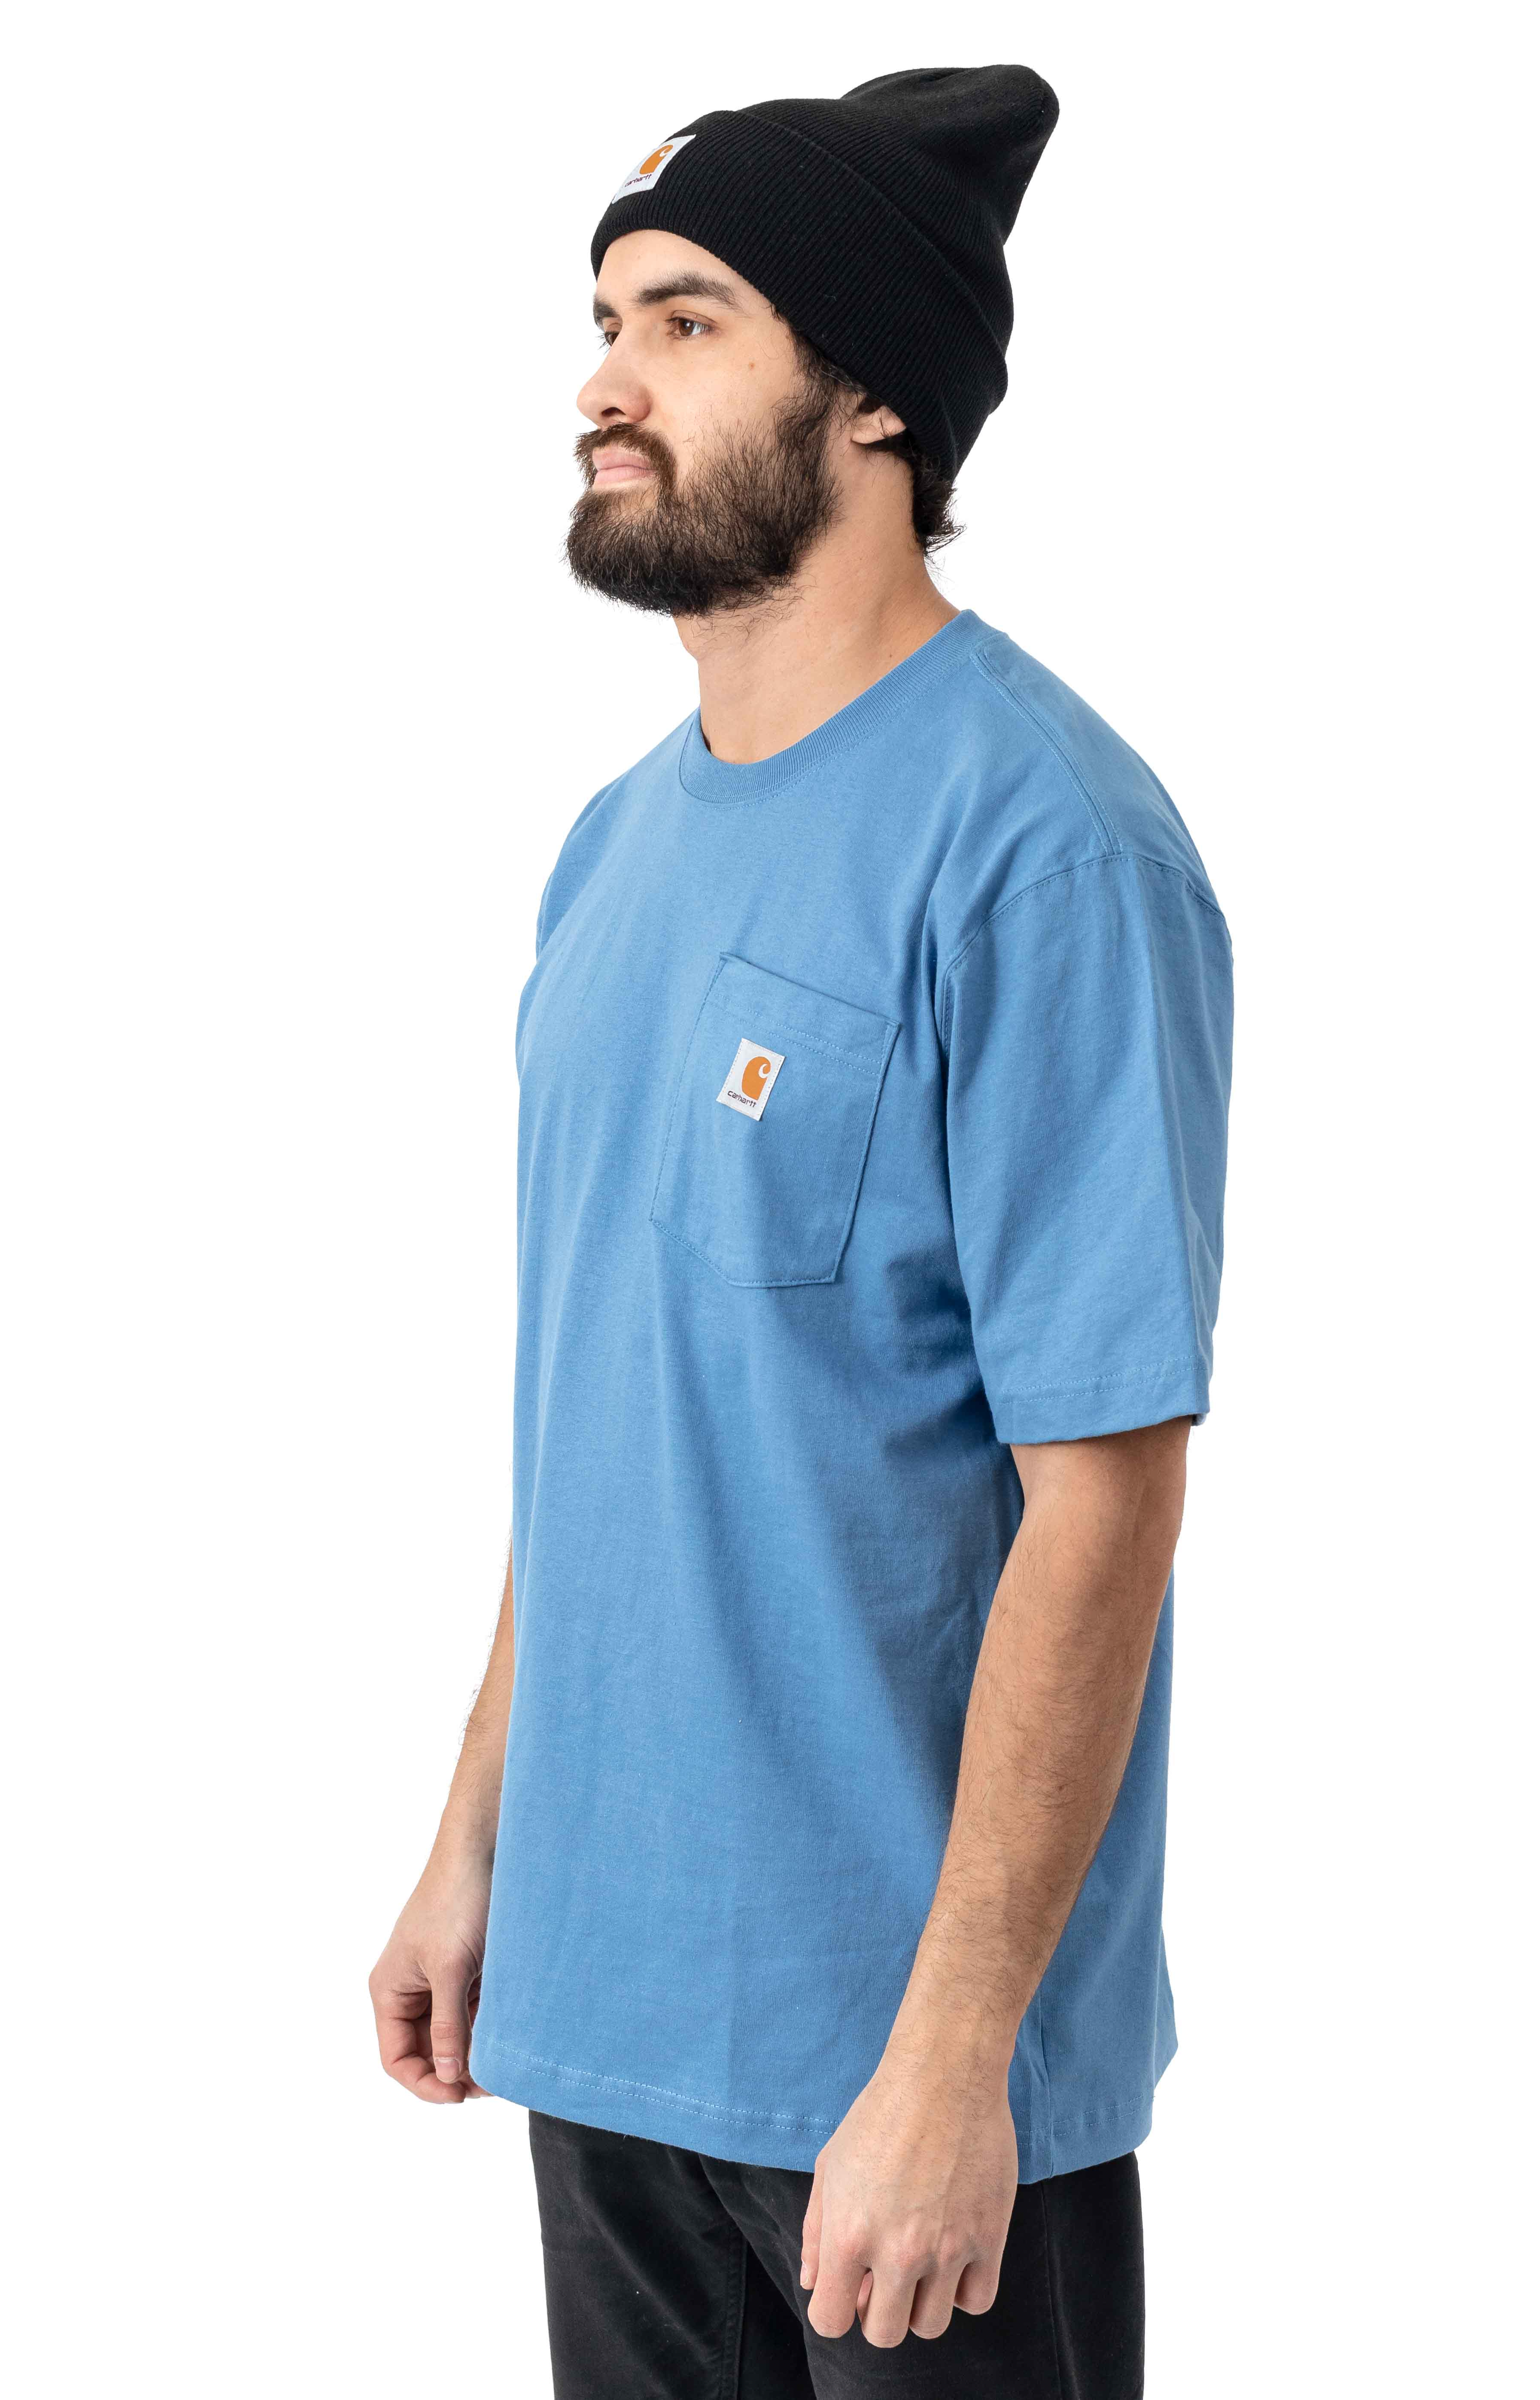 (K87) Workwear Pocket T-Shirt - French Blue 2